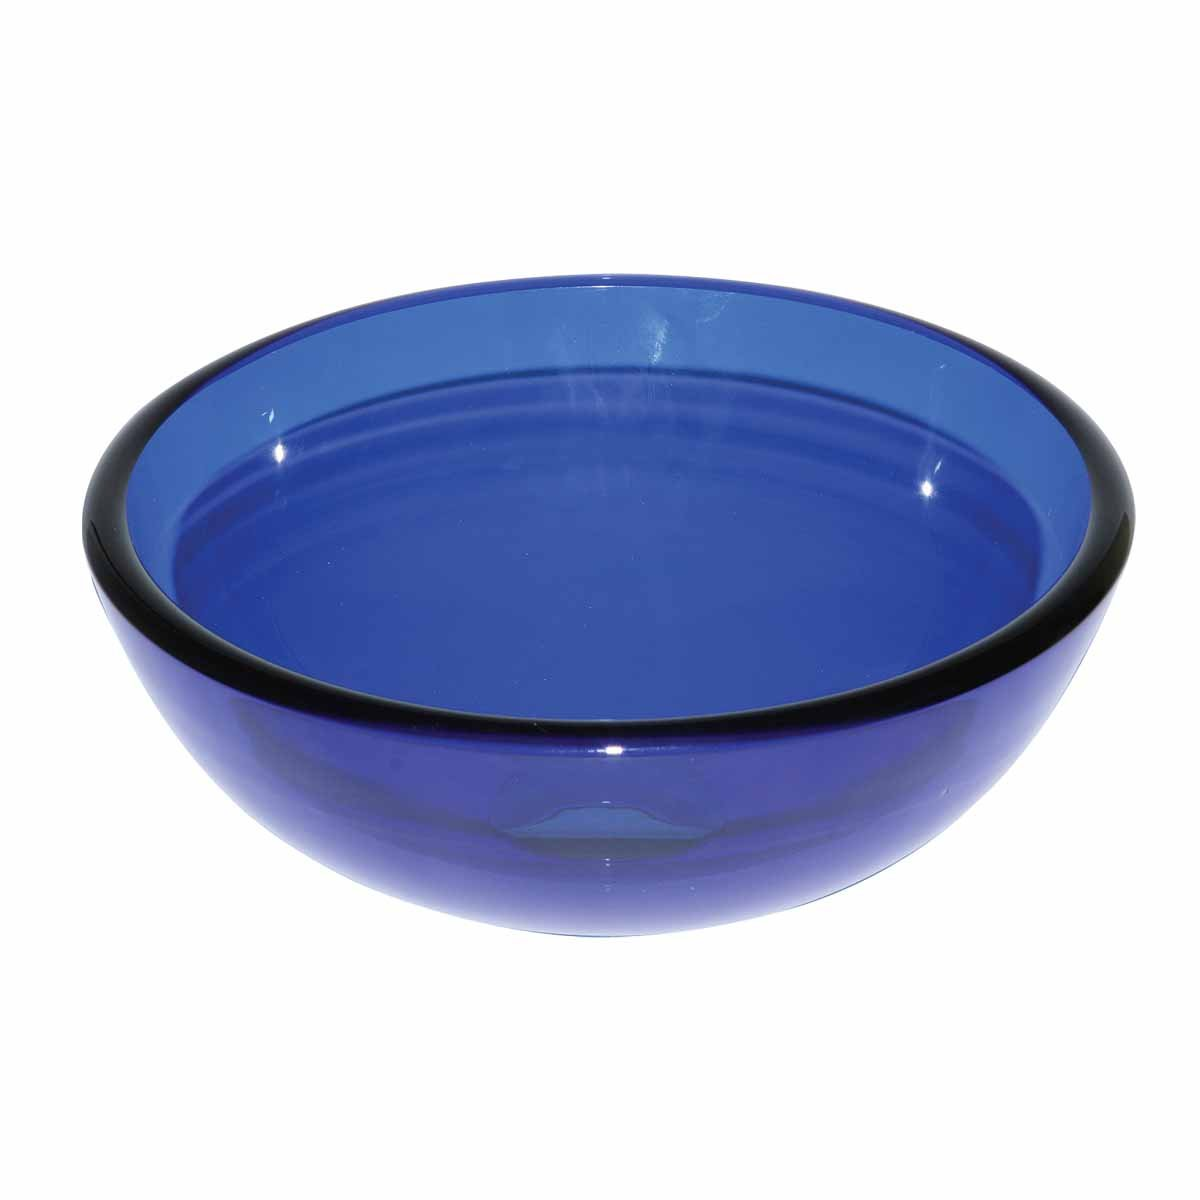 Blue Glass Vessel Sink With Drain, Mounting Ring, Tempered Glass Mini Bowl Sink | Renovator